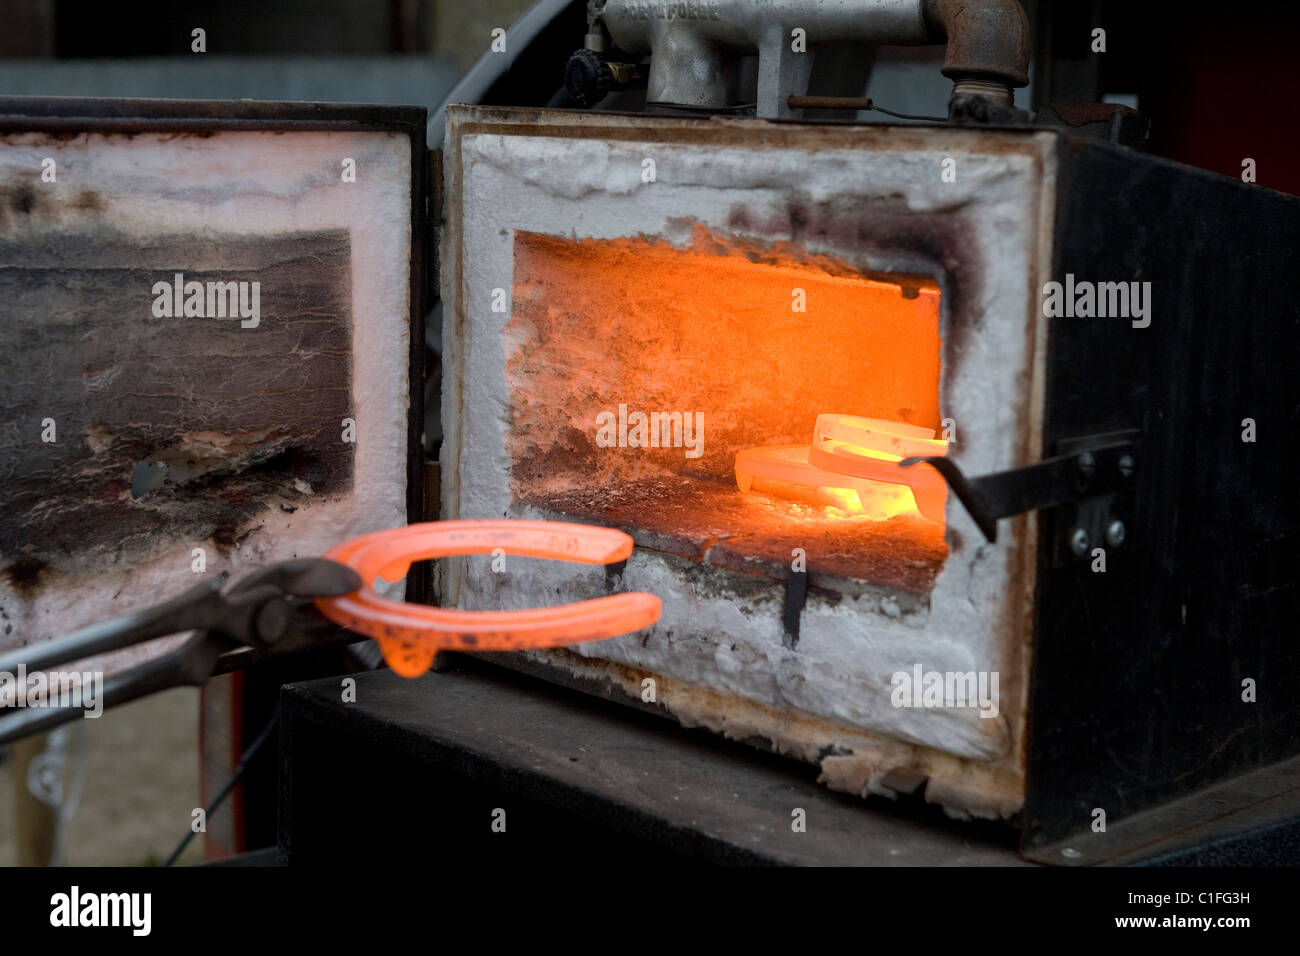 Farrier taking horseshoe out of furnace - Stock Image